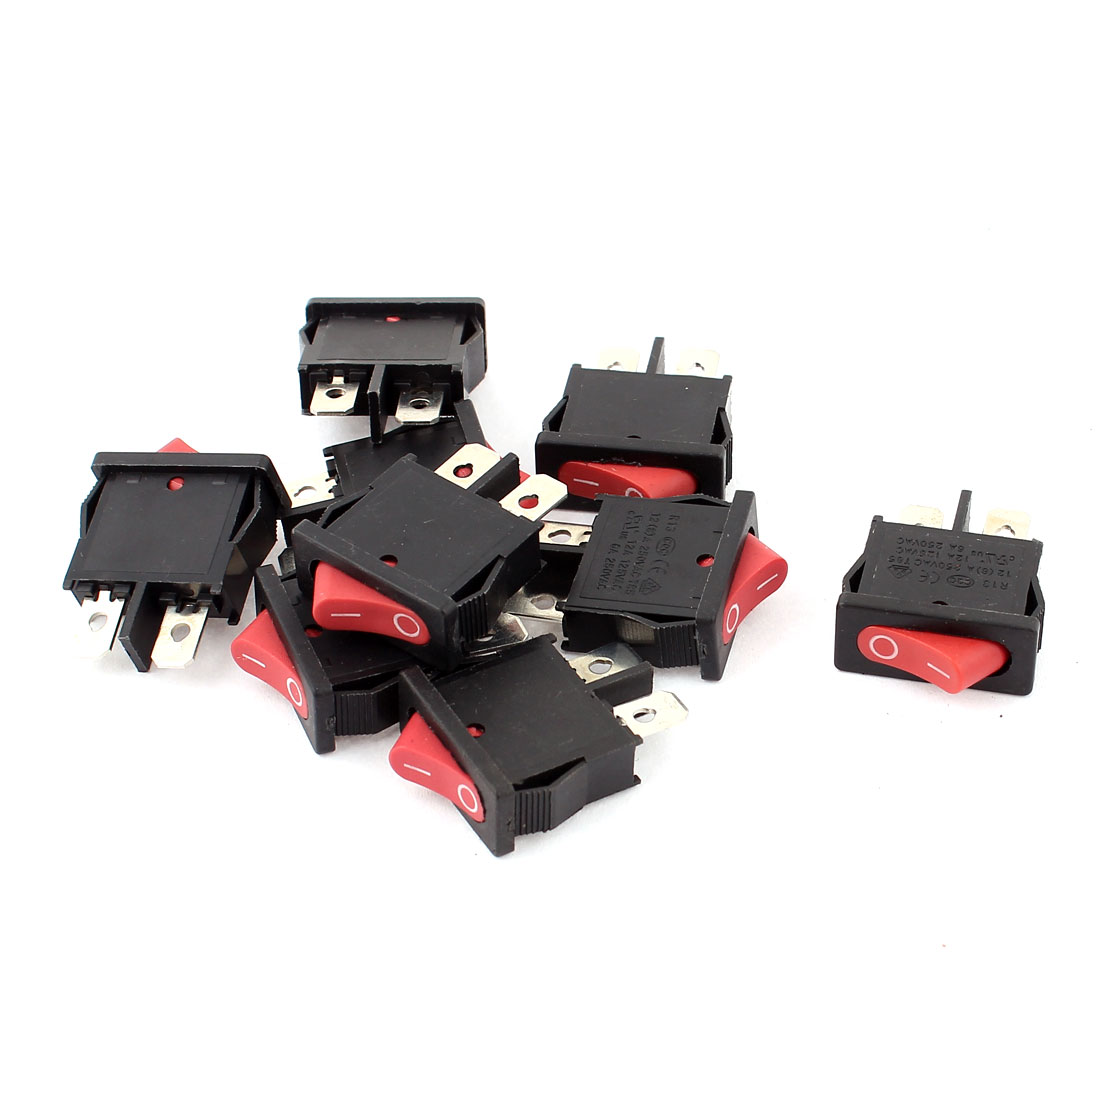 AC 250V 12(8)A SPST 2 Terminals ON/OFF Snap In Boat Rocker Switch 9pcs